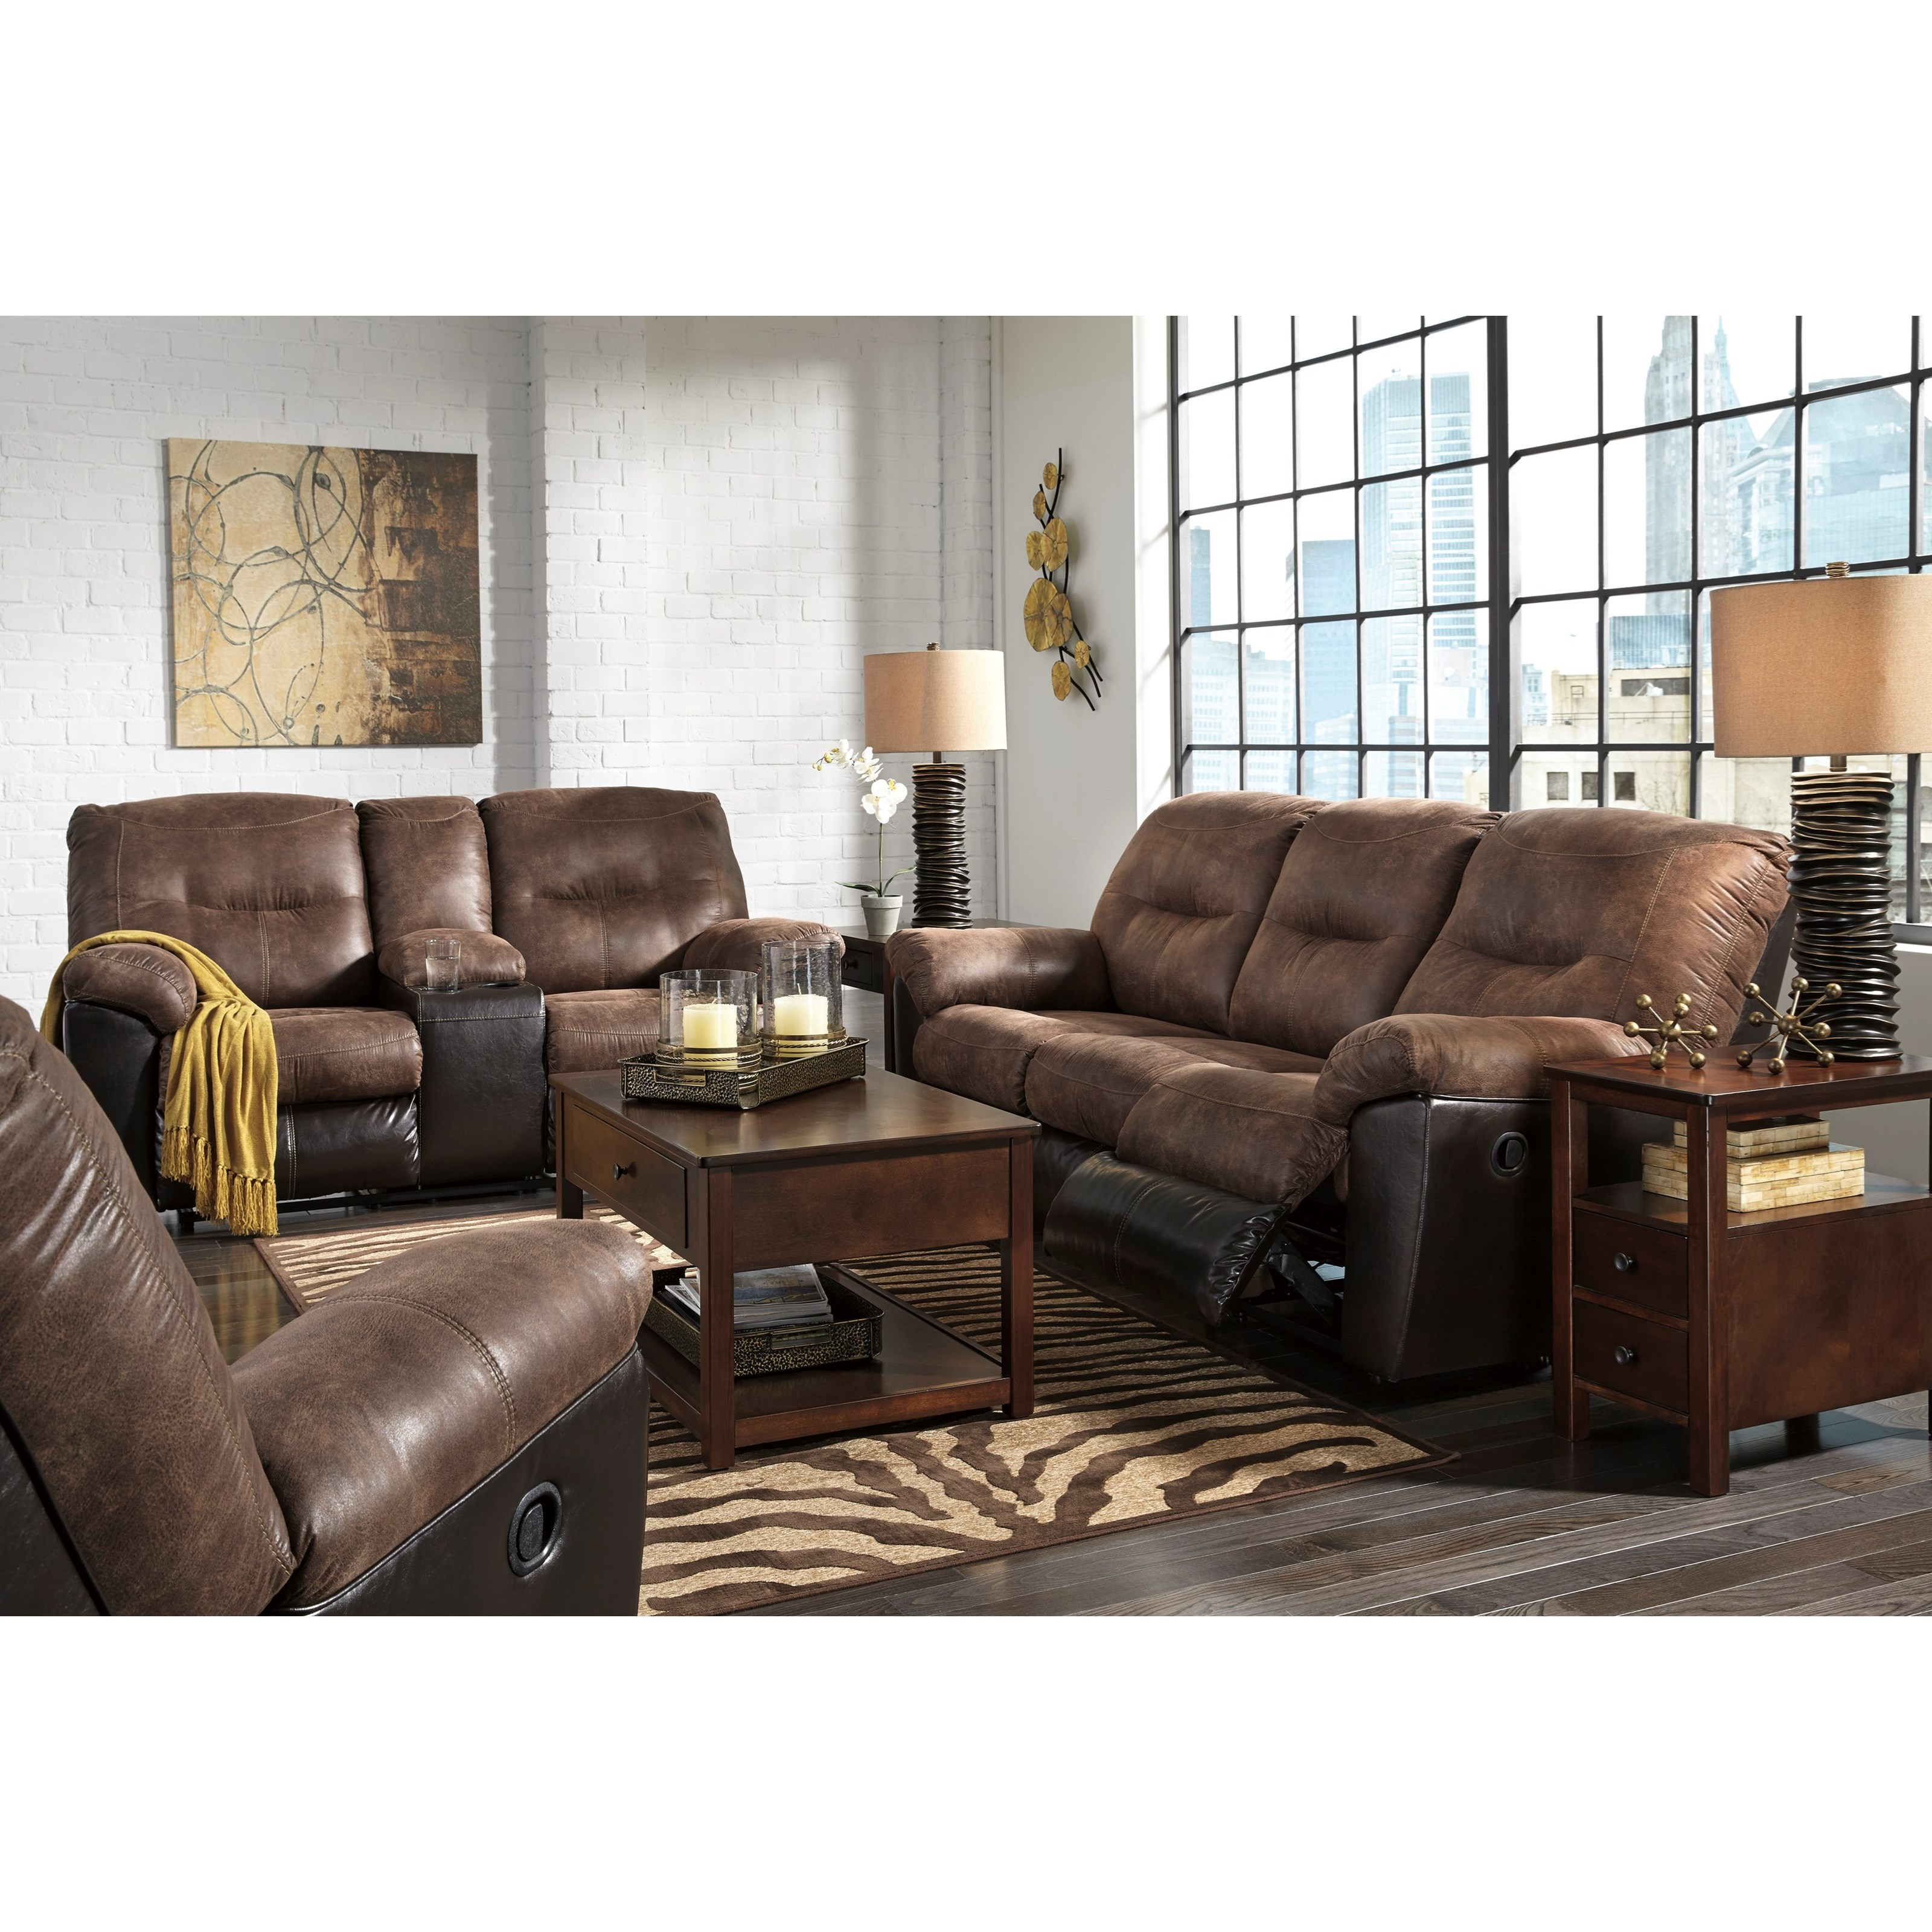 Two-Tone Faux Leather Double Reclining Loveseat w/ Console  sc 1 st  Wolf Furniture : double reclining loveseat - islam-shia.org